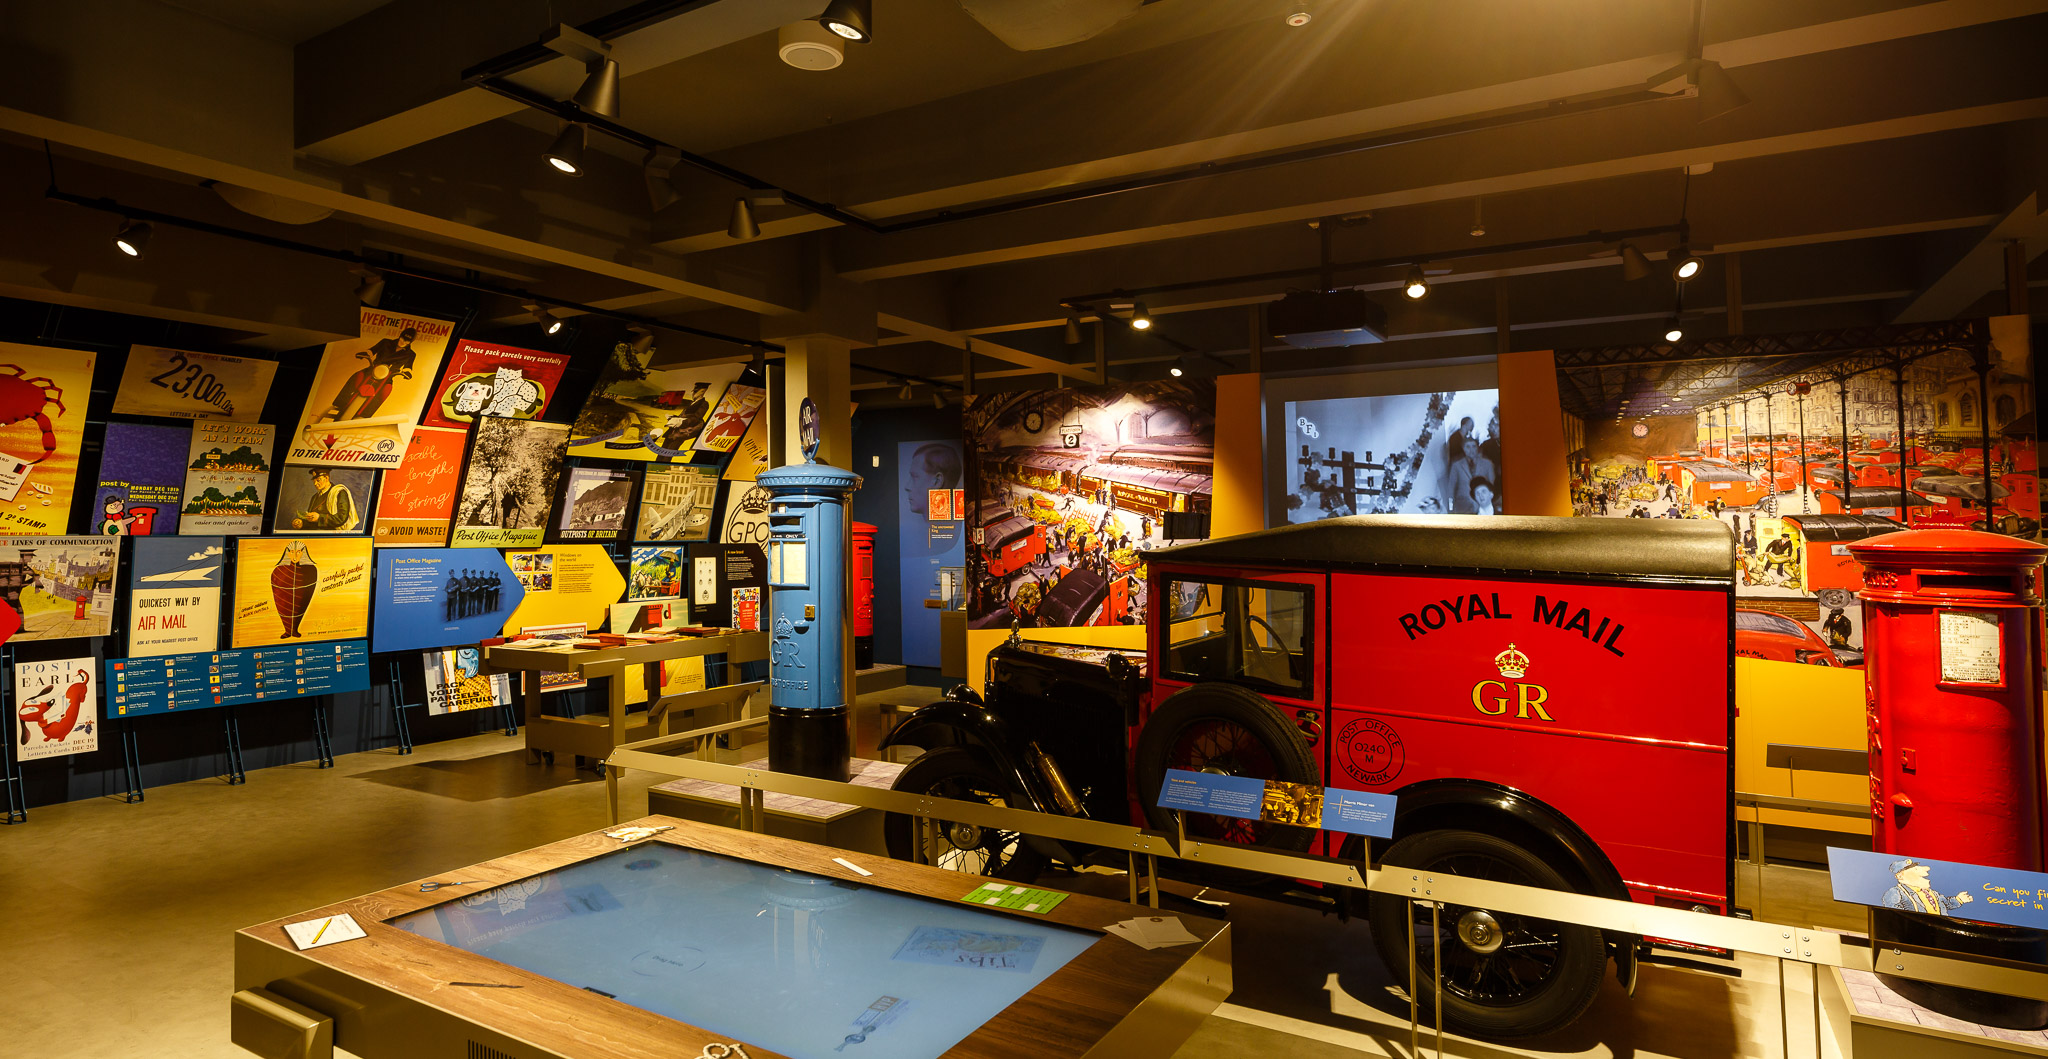 Inside The Postal Museum exhibition